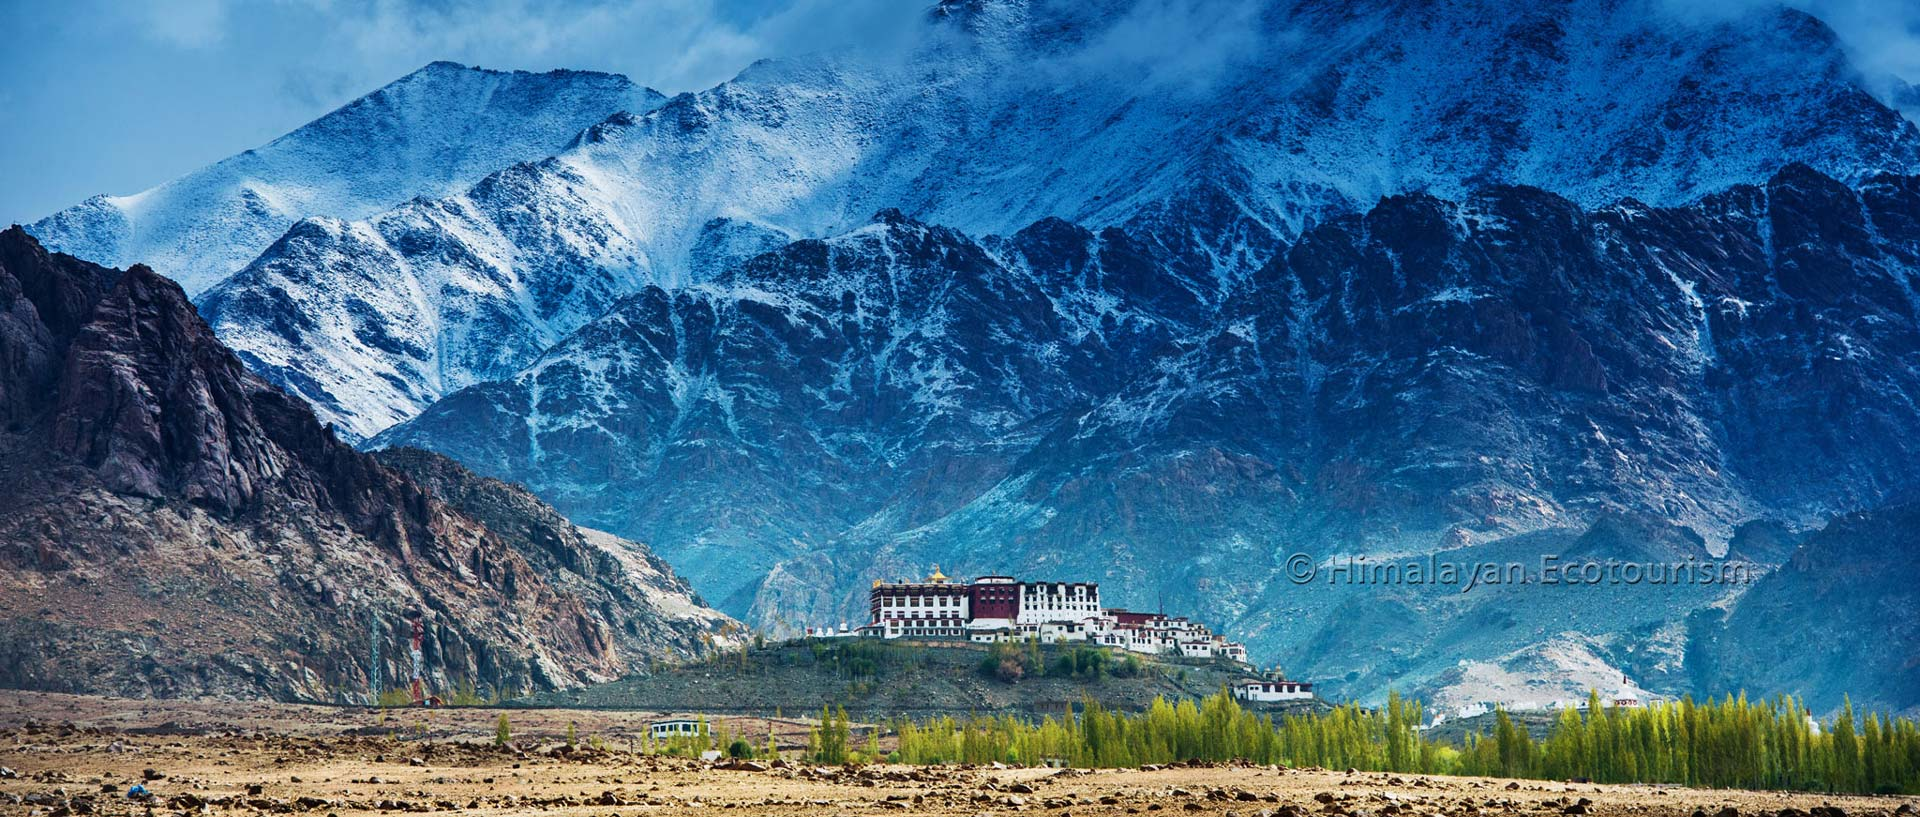 Monasteries and mountains in Ladakh